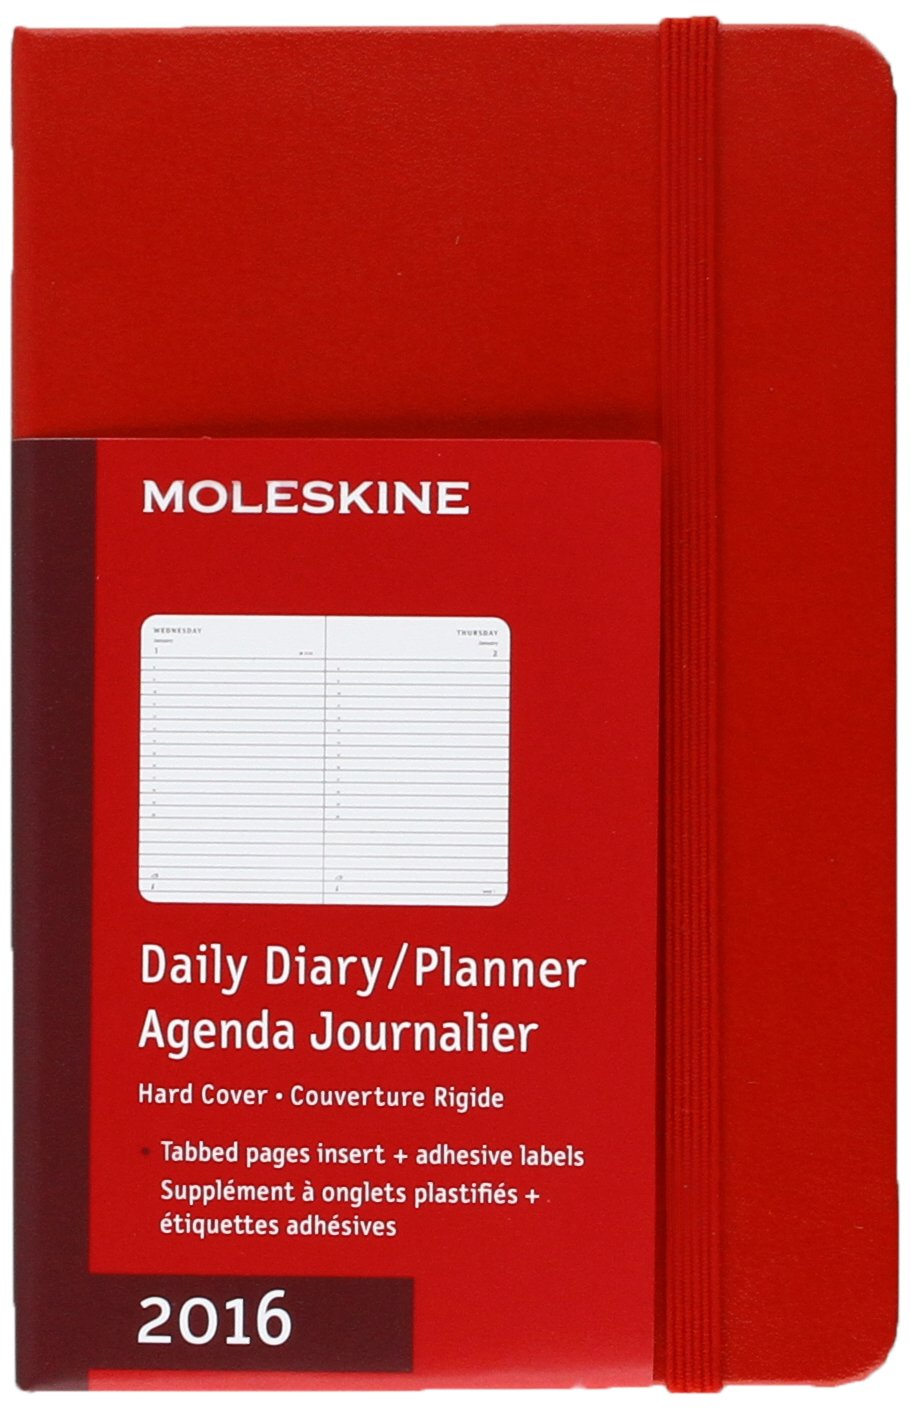 Moleskine 2016 Daily Planner, 12M, Pocket, Scarlet Red, Hard Cover (3.5 x 5.5)